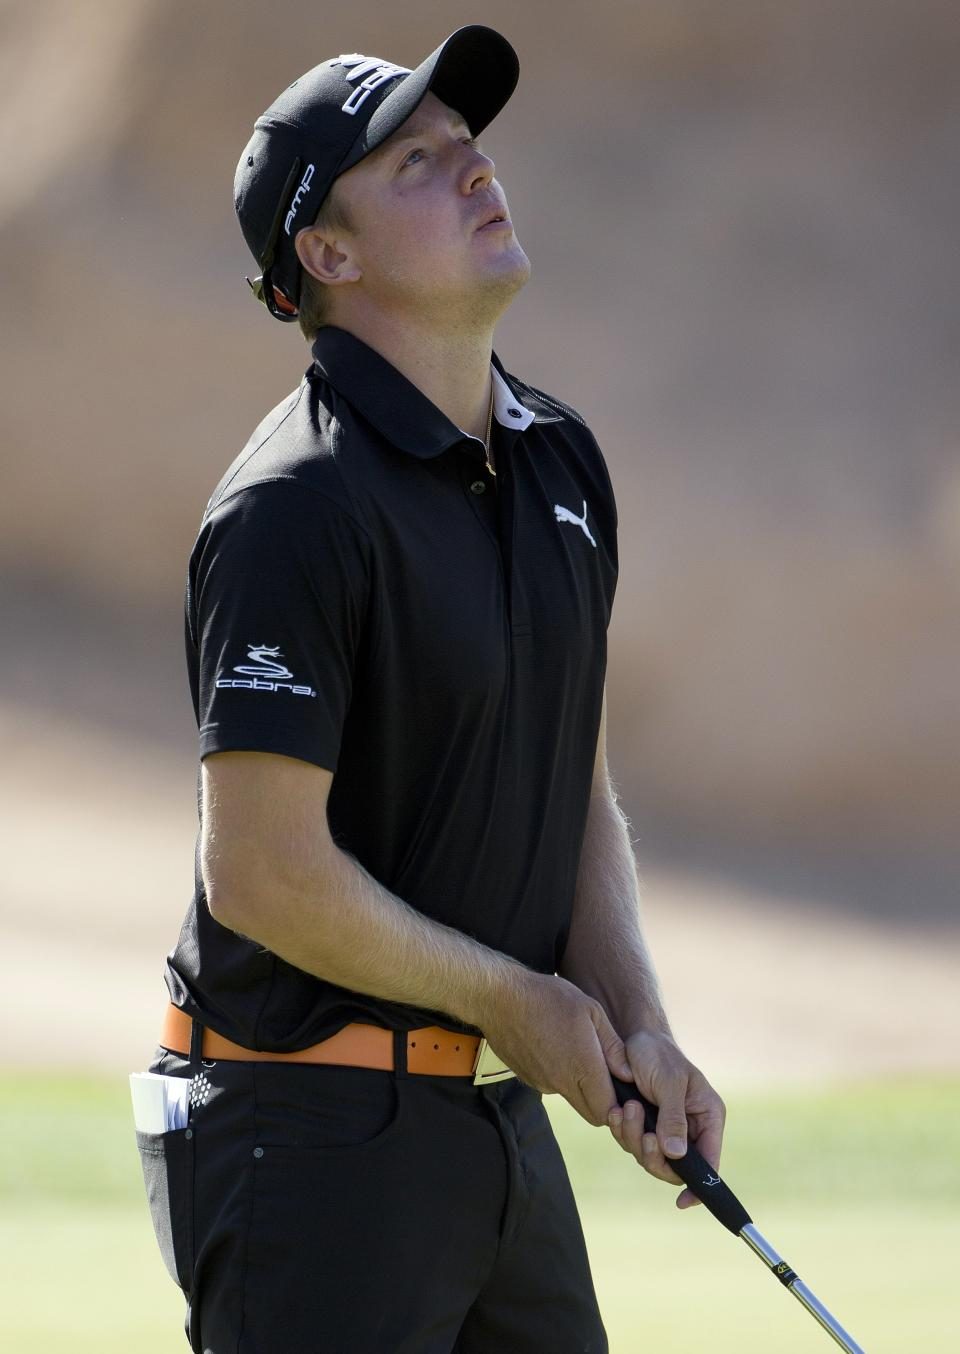 Jonas Blixt of Sweden, reacts after missing a putt for birdie on the eighth hole during the second round of the Justin Timberlake Shriners Hospitals for Children Open golf tournament, Friday, Oct. 5, 2012, in Las Vegas. (AP Photo/Julie Jacobson)